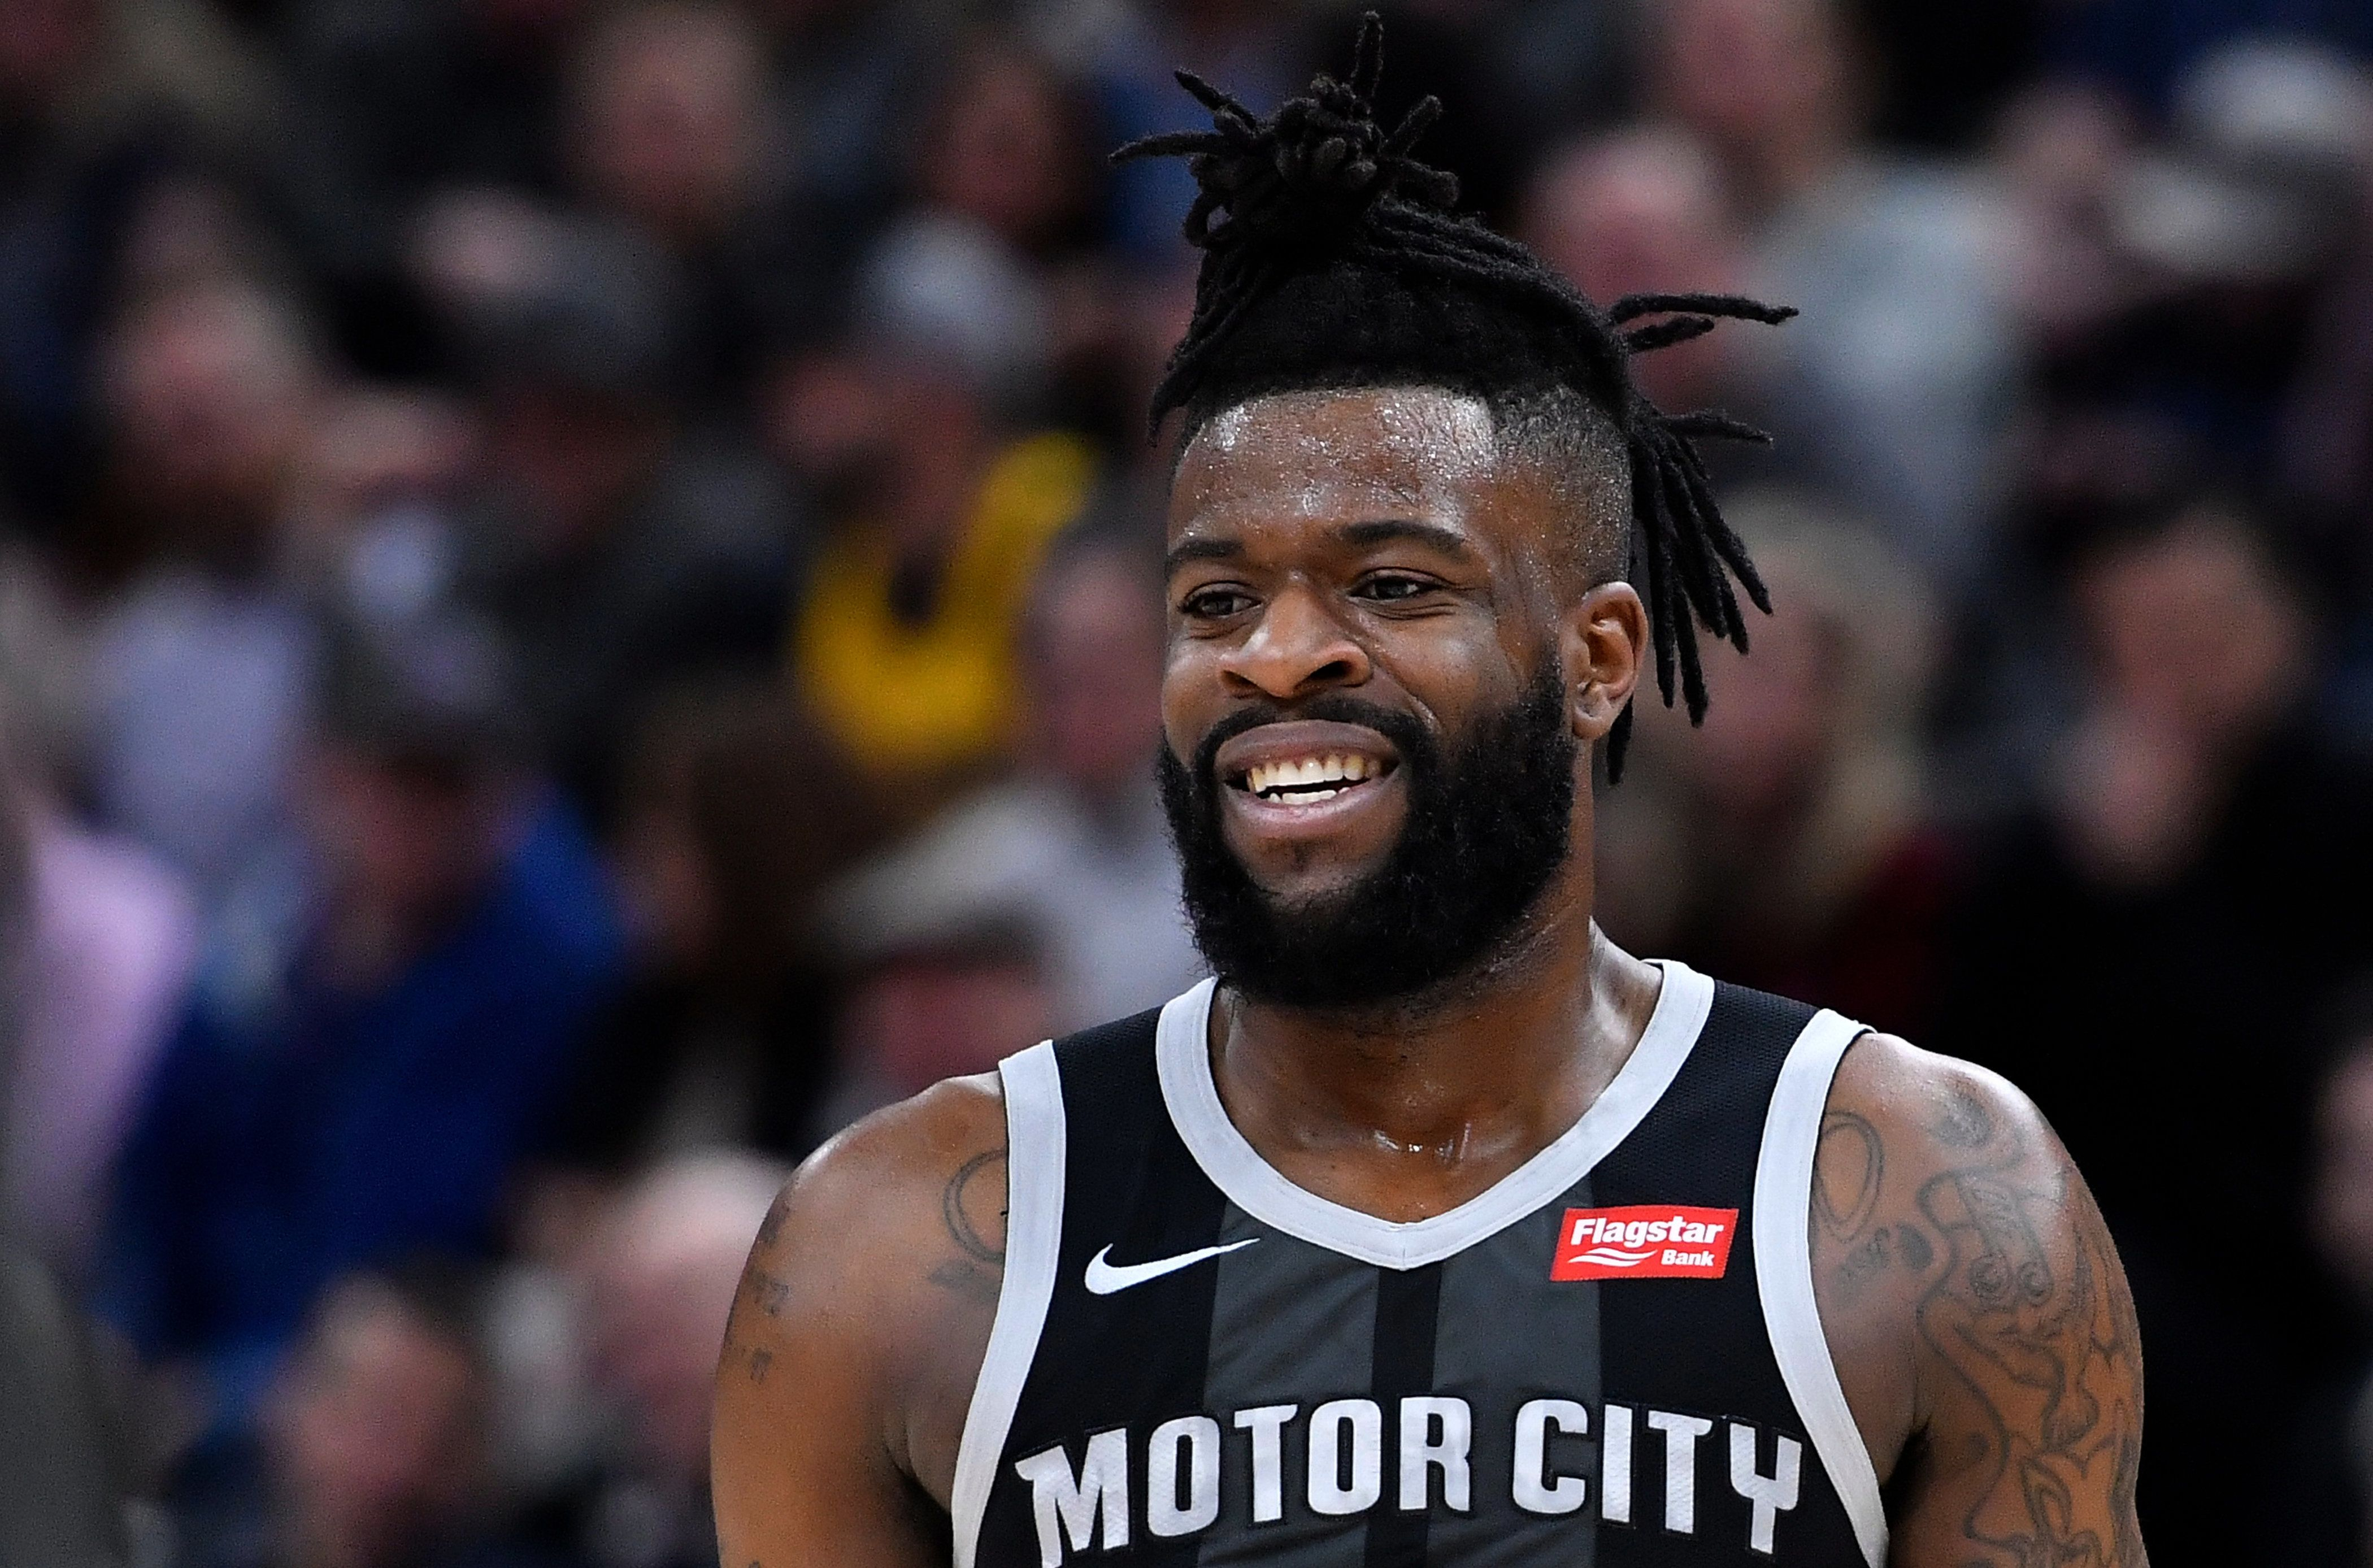 SALT LAKE CITY, UT - JANUARY 14: Reggie Bullock #25 of the Detroit Pistons looks on in a NBA game against the Utah Jazz at Vivint Smart Home Arena on January 14, 2019 in Salt Lake City, Utah. NOTE TO USER: User expressly acknowledges and agrees that, by downloading and or using this photograph, User is consenting to the terms and conditions of the Getty Images License Agreement. (Photo by Gene Sweeney Jr./Getty Images)